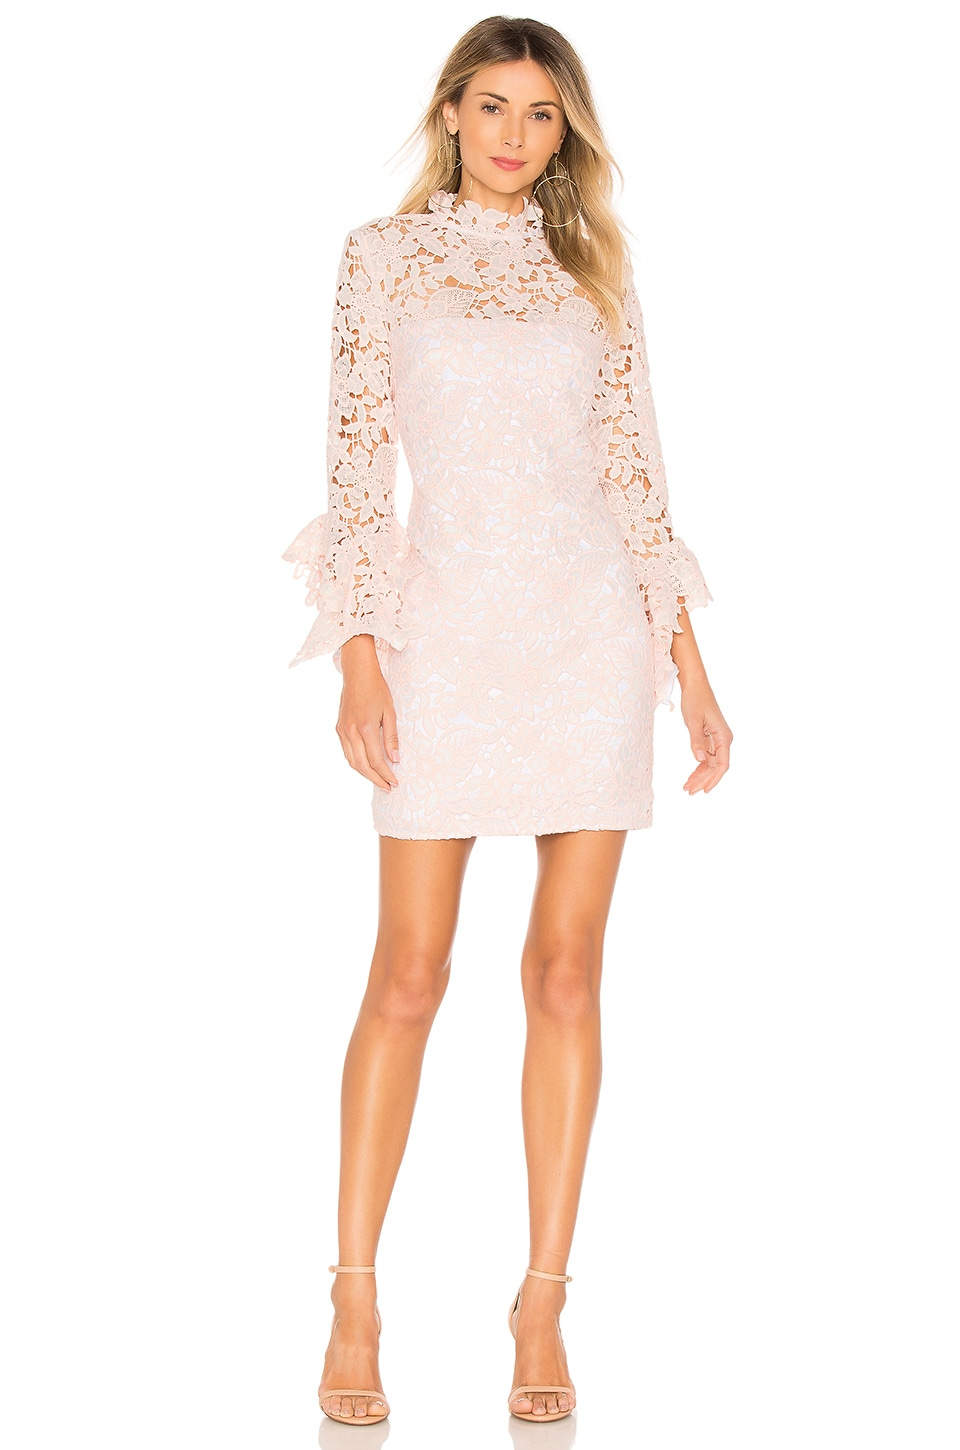 THE JETSET DIARIES Frangapani Lace Mini Dress in Cream & Blush